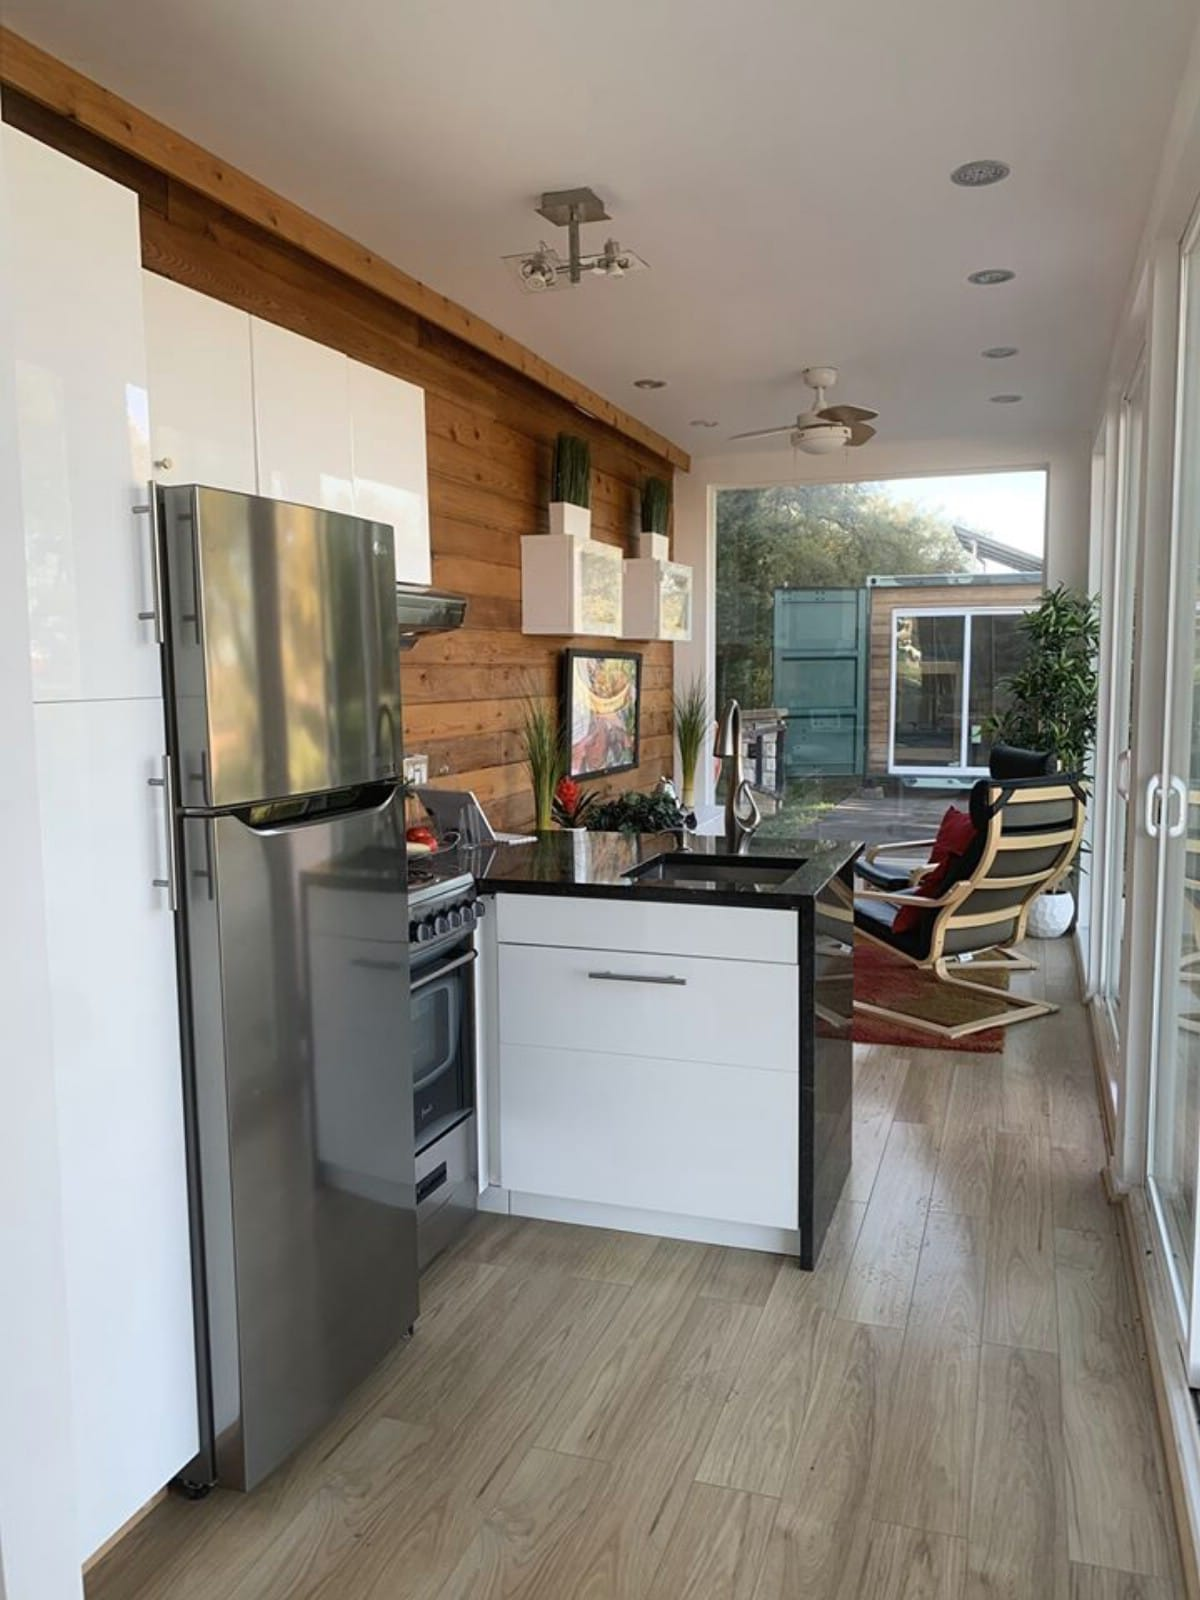 Stainless steel refrigerator and stove in tiny home